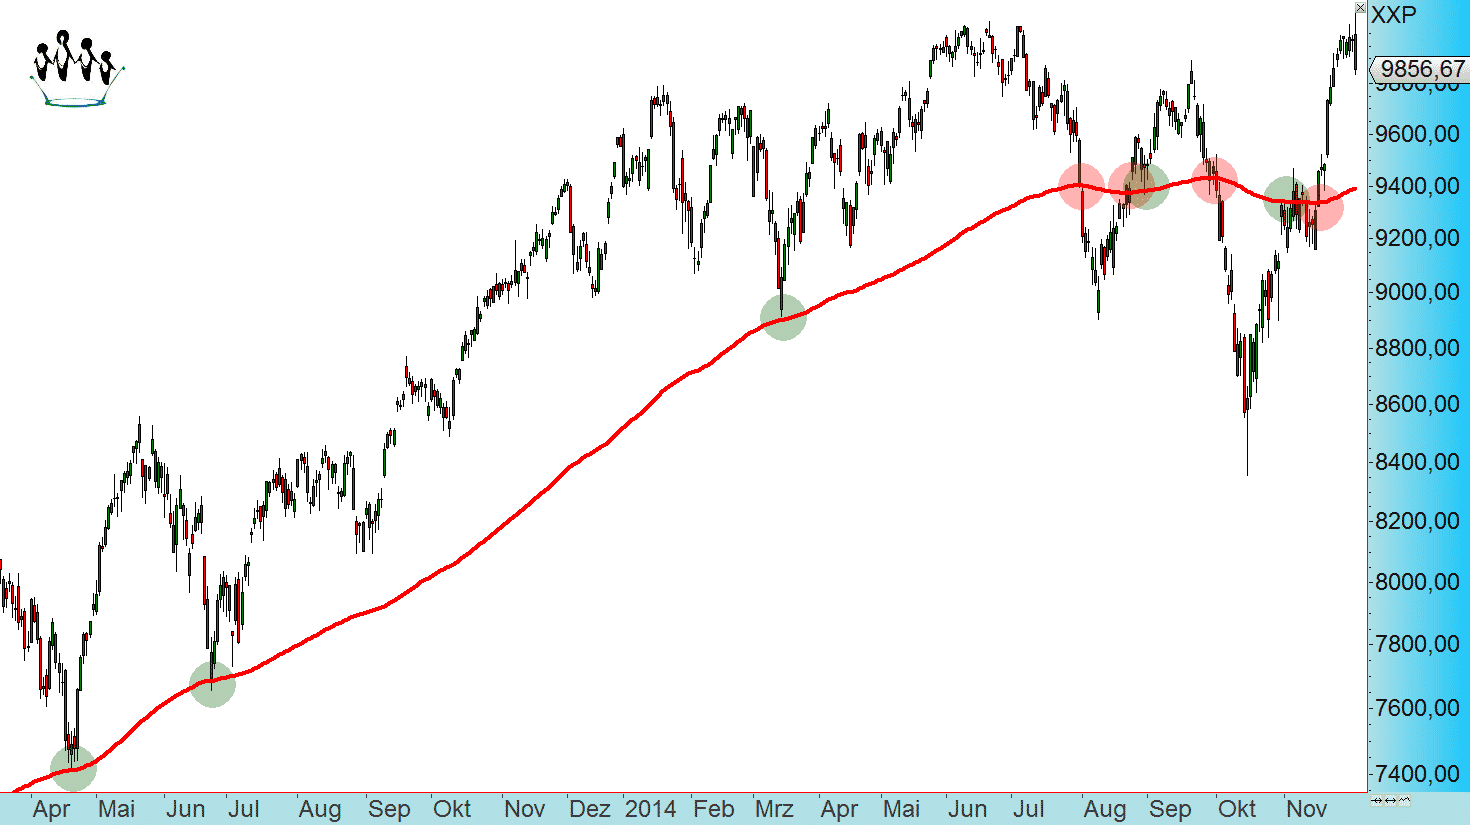 Exponential Moving Average (EMA)